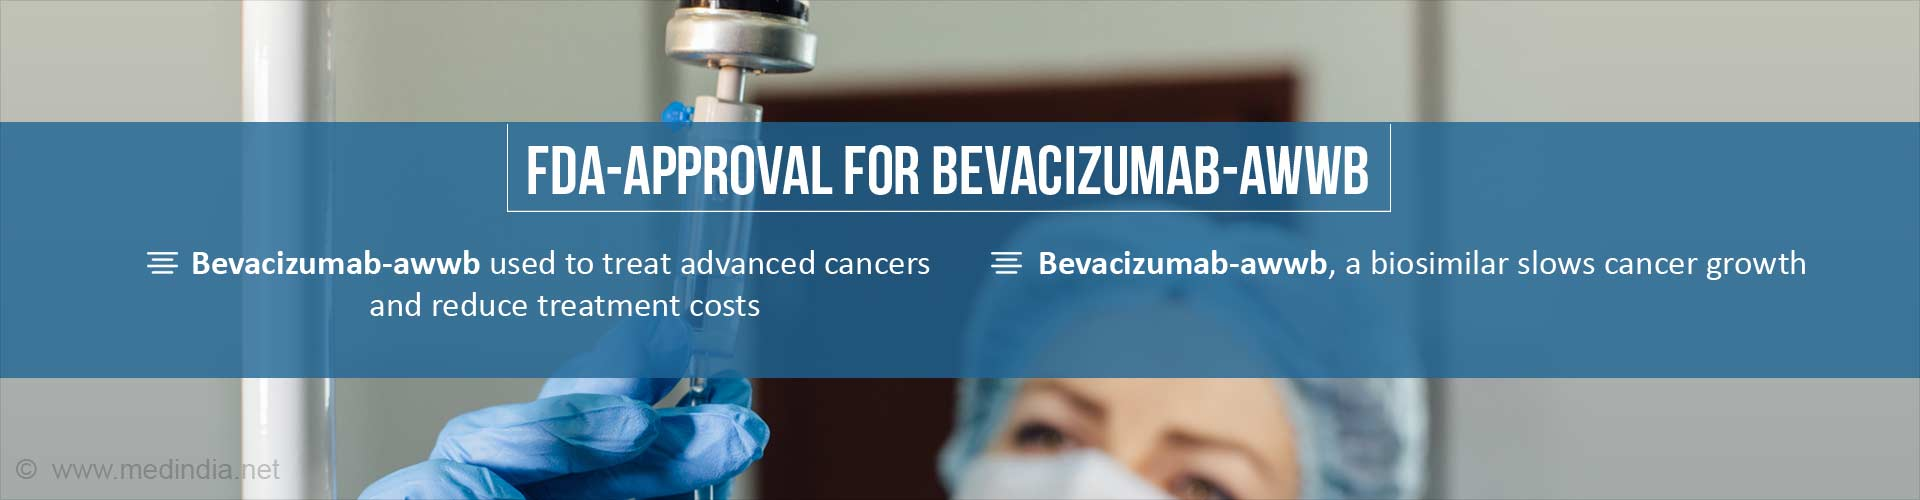 FDA-Approval for Bevacizumab-awwb for Treatment of Advanced Cancers